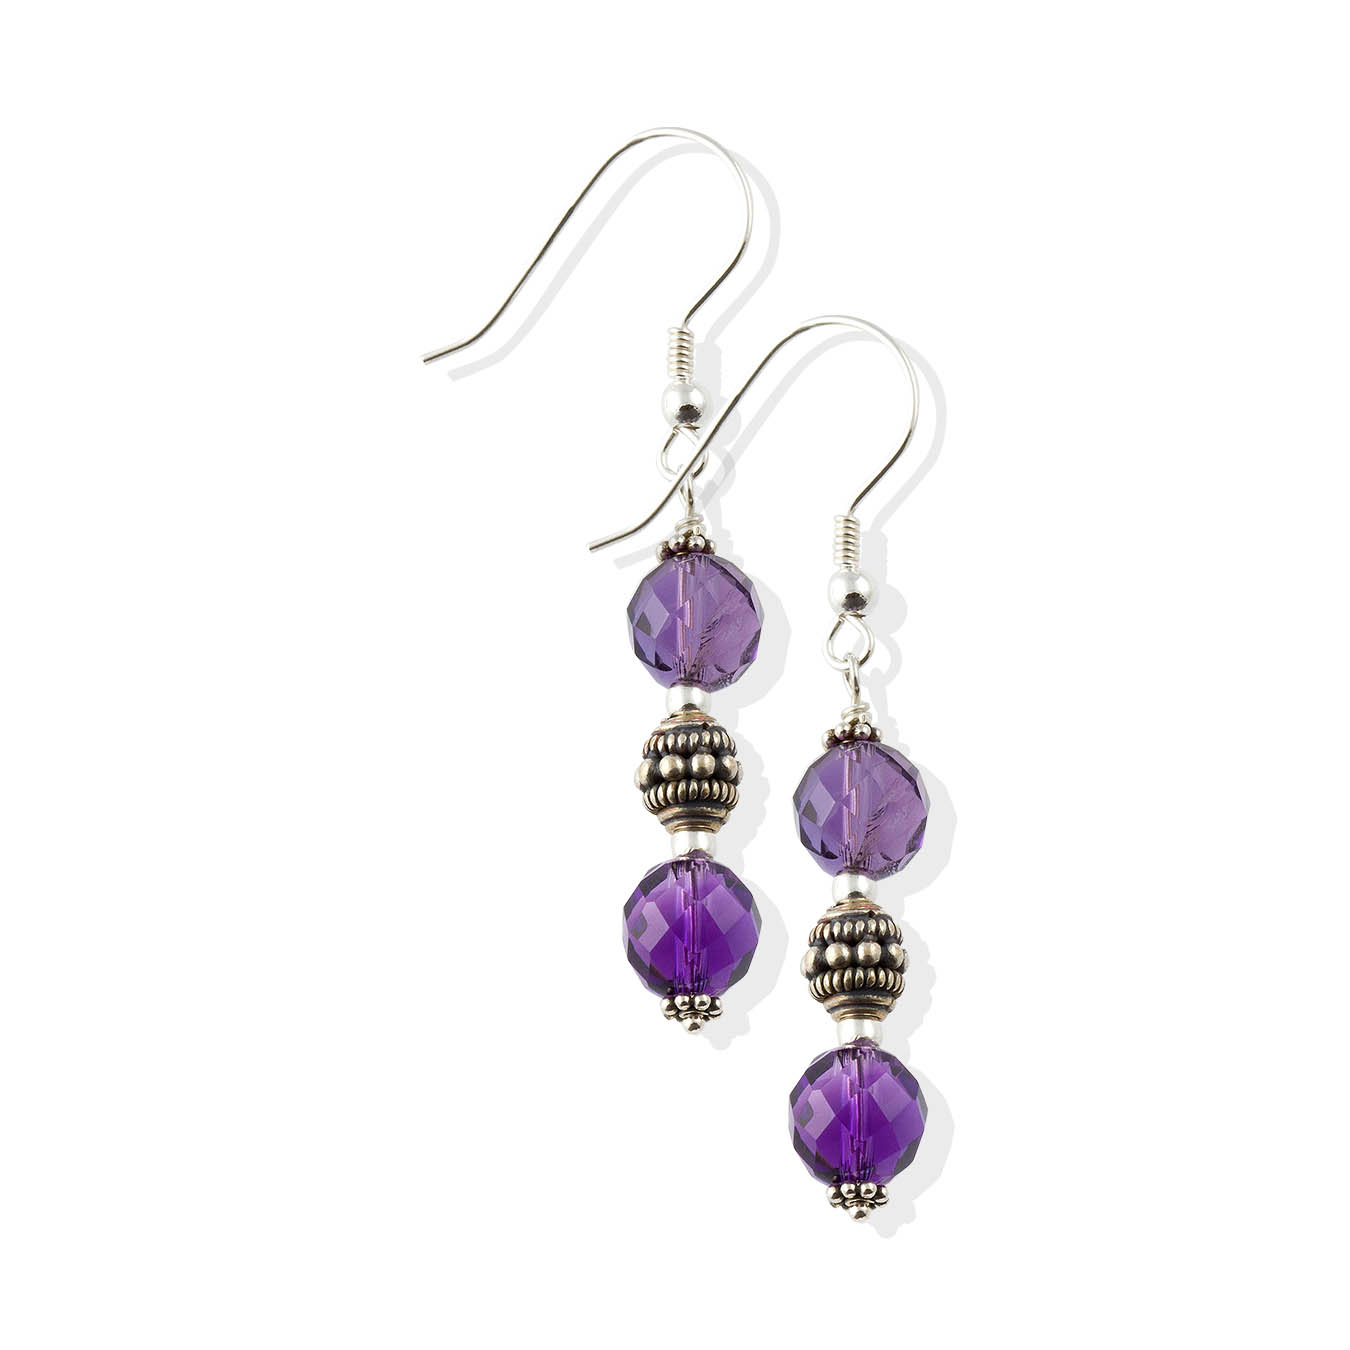 Handcrafted february birthstone bead jewelry made of faceted amethyst